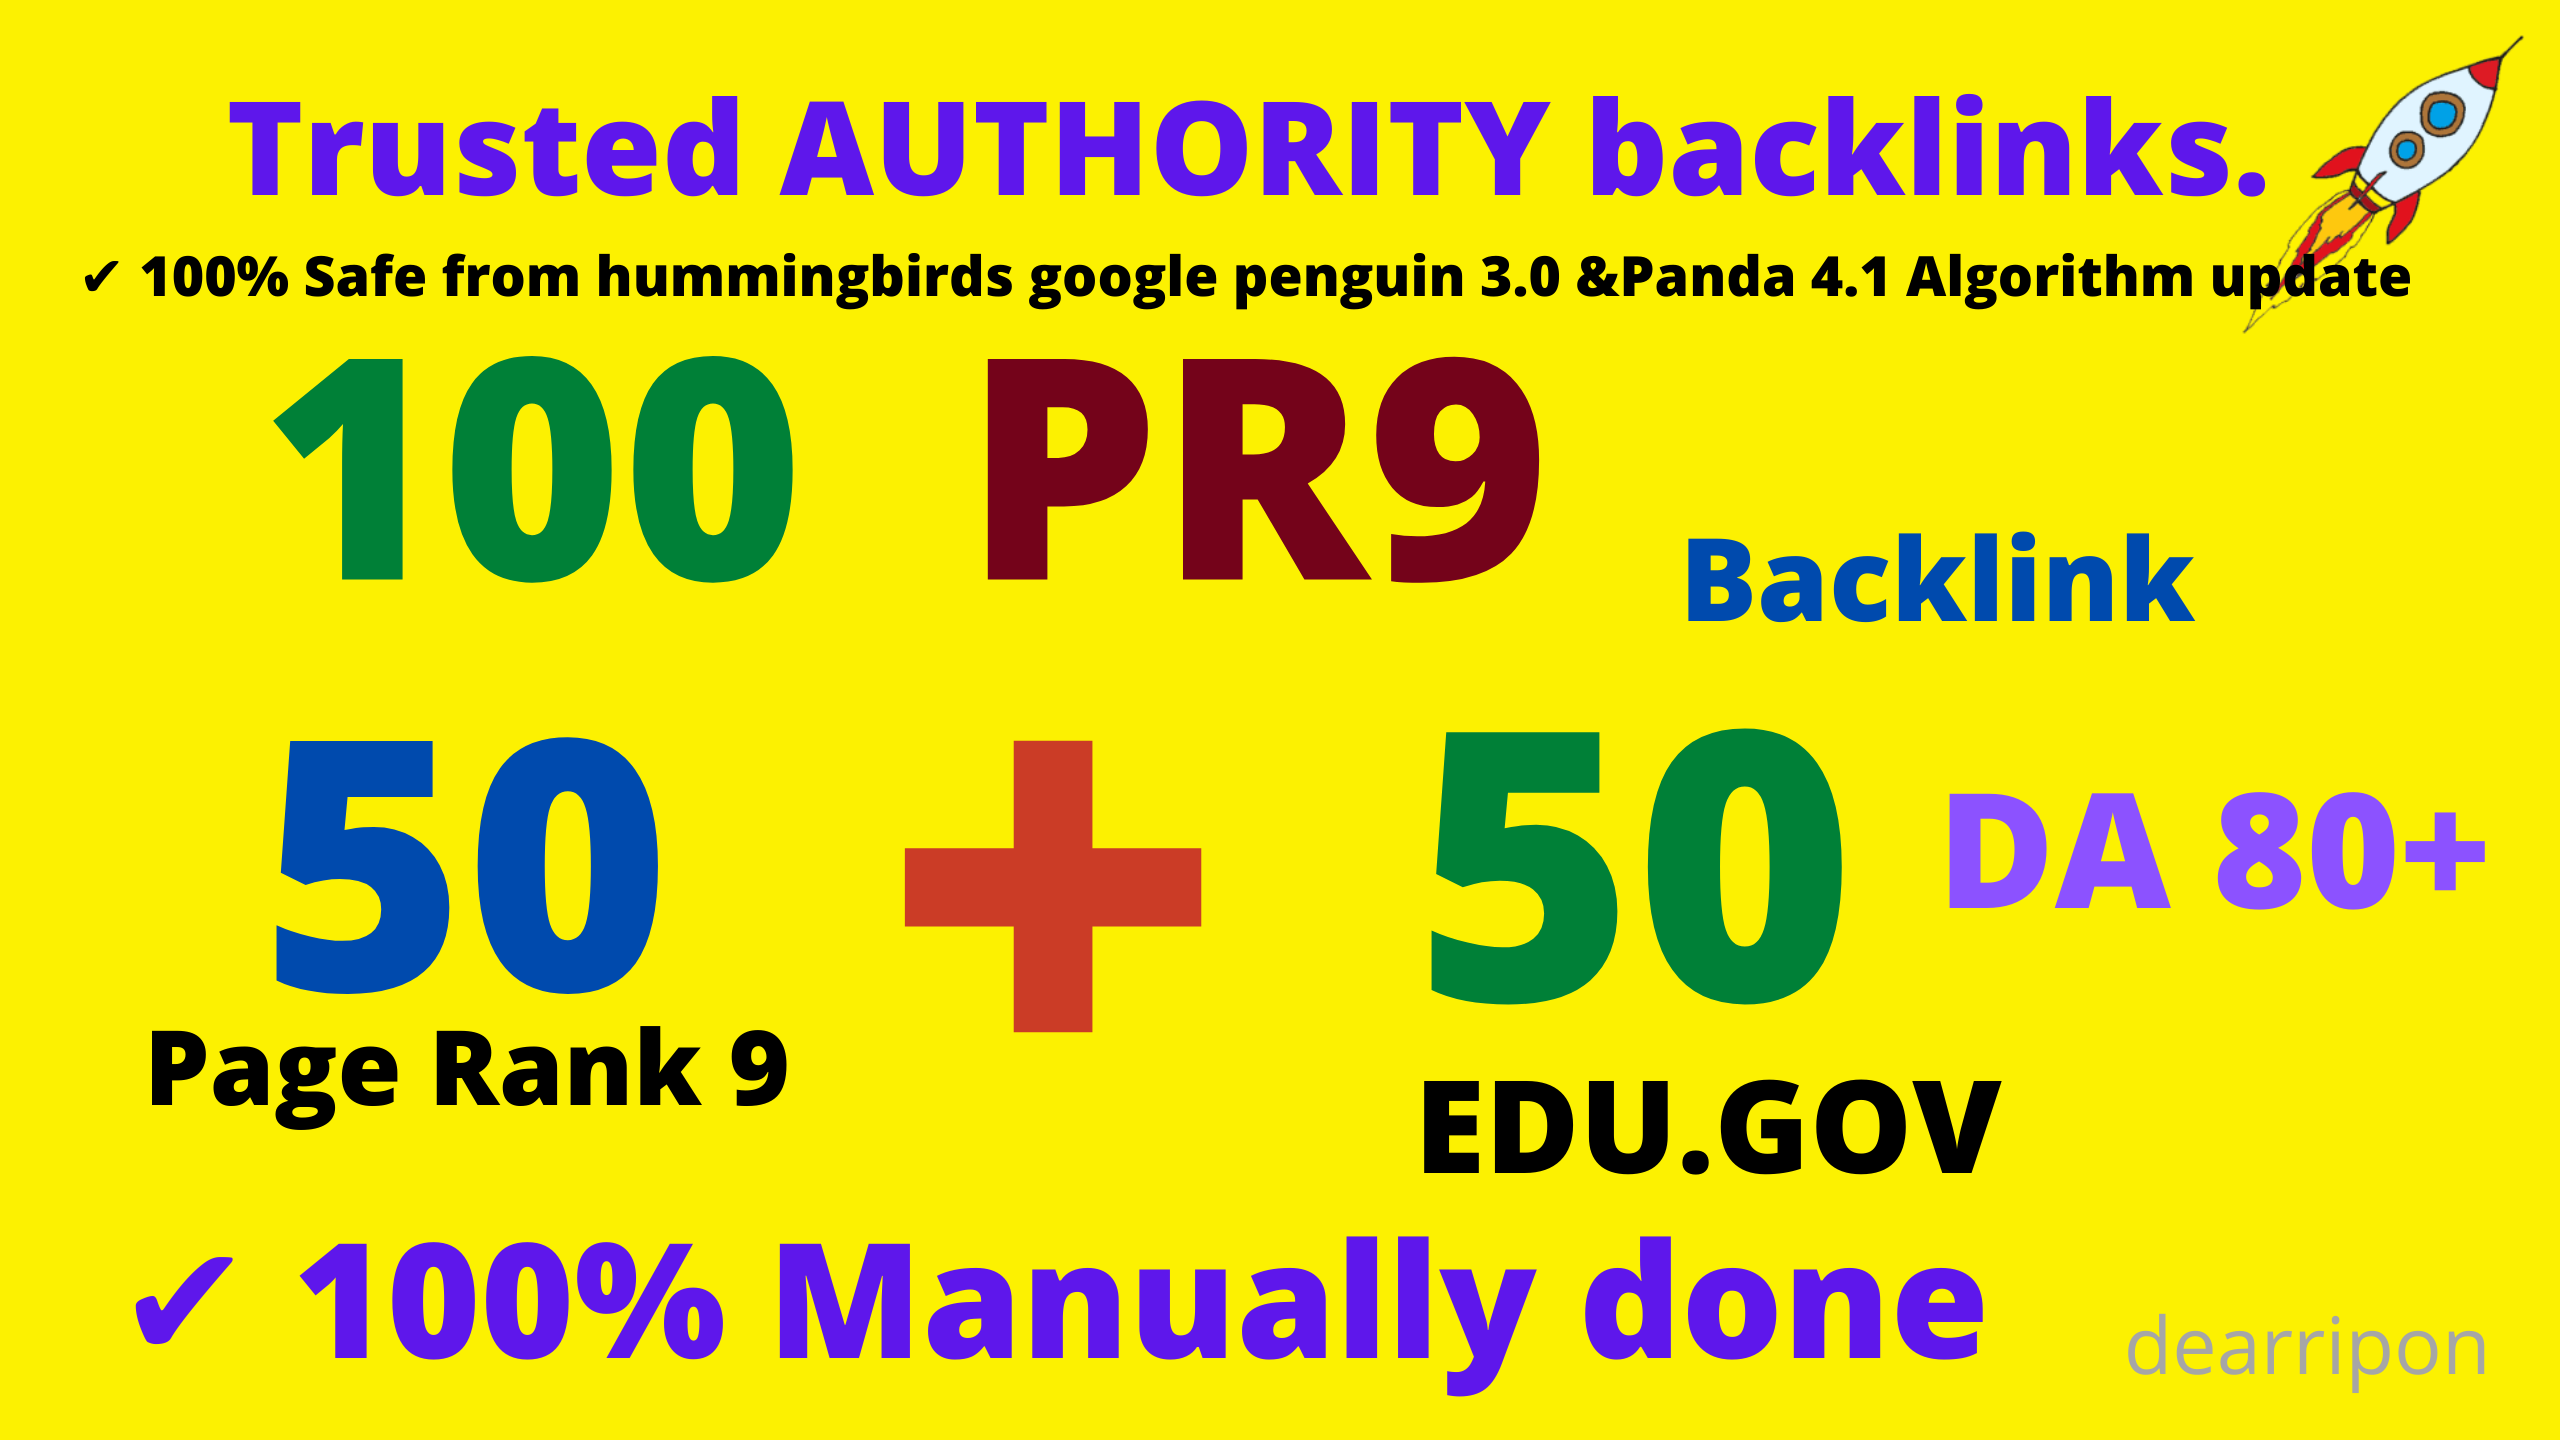 Exclusively-DA80+100 Backlinks 50 PR9+50 EDU High Quality SEO Permanent Links